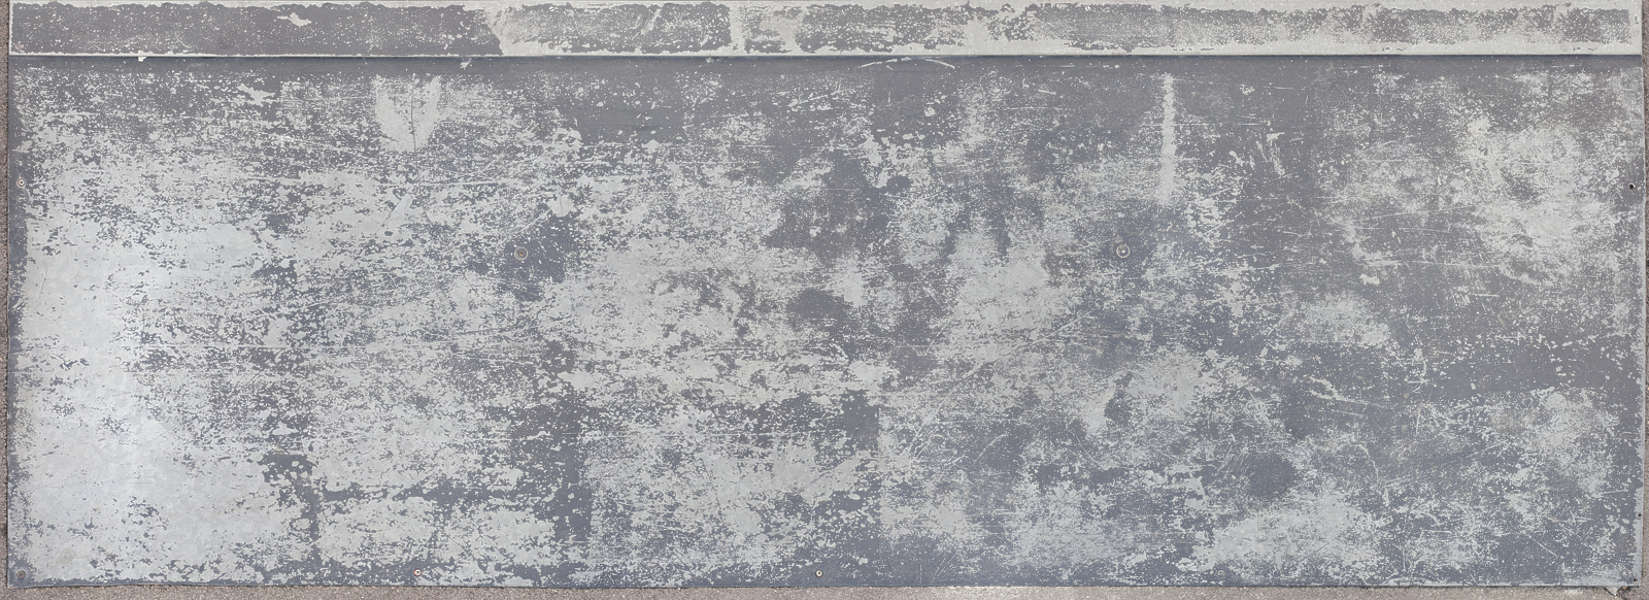 Metalplatespainted0151 Free Background Texture Metal